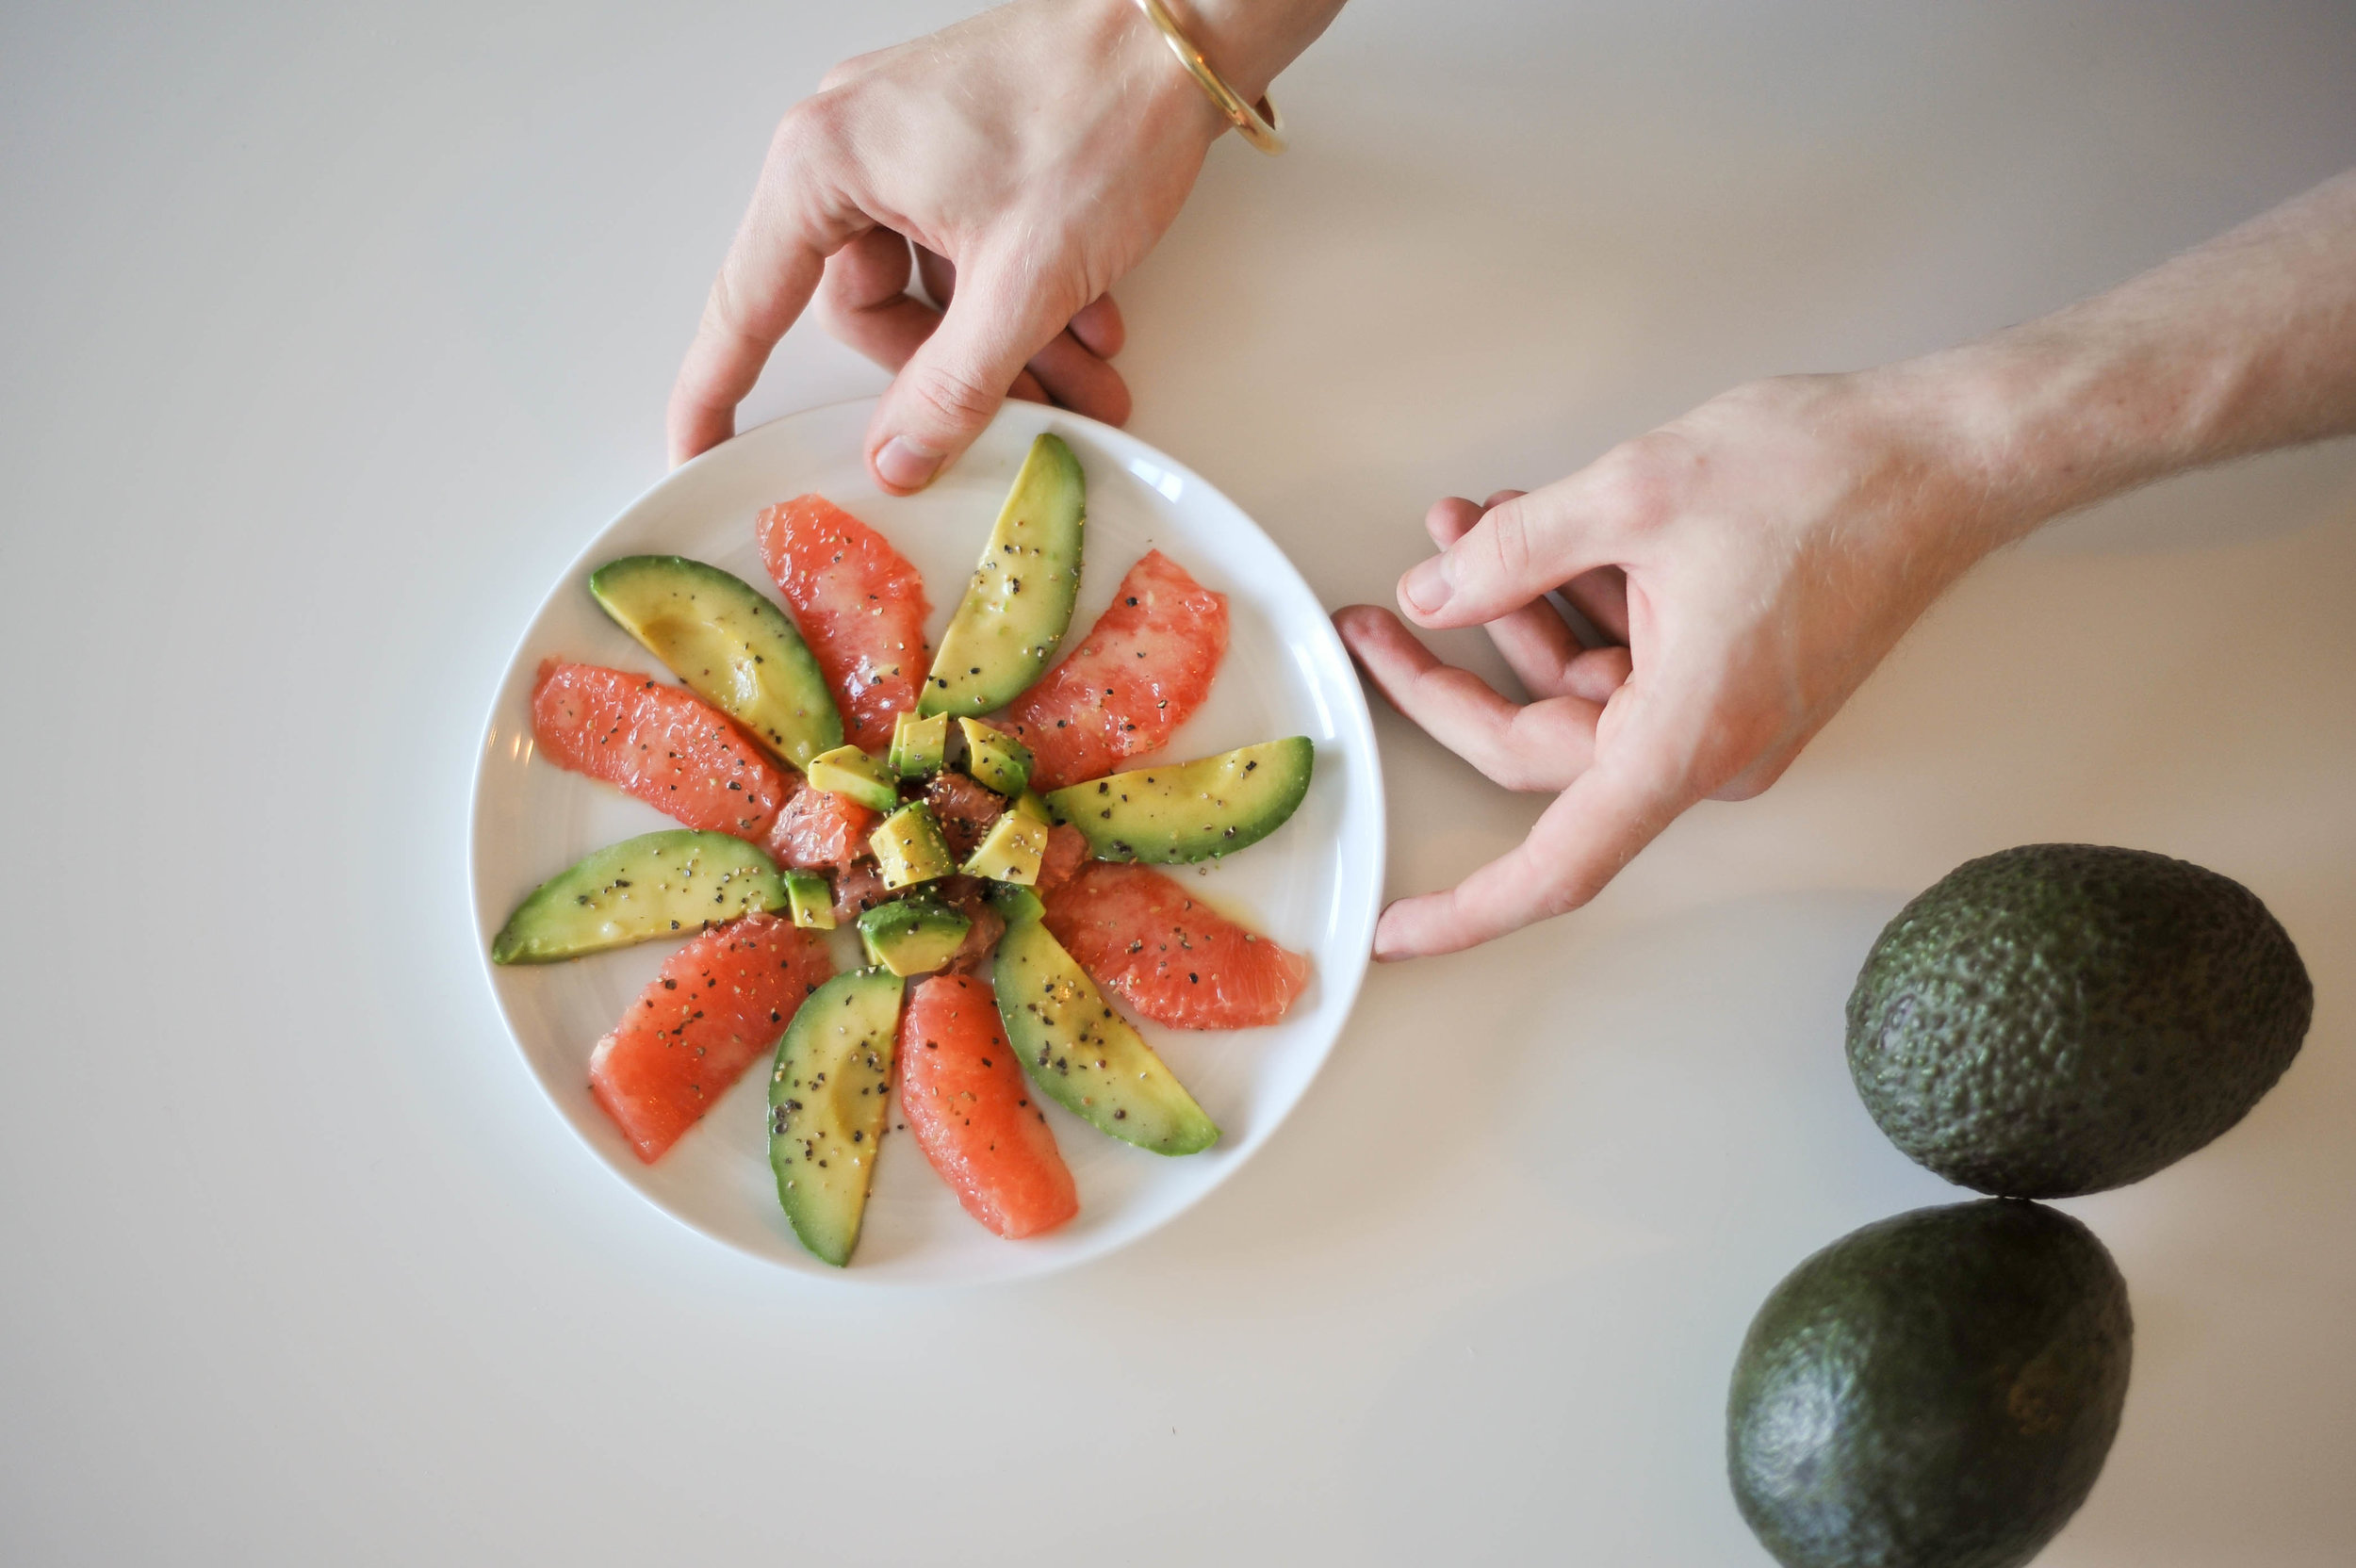 Slices of avocado and grapefruit on a plate.